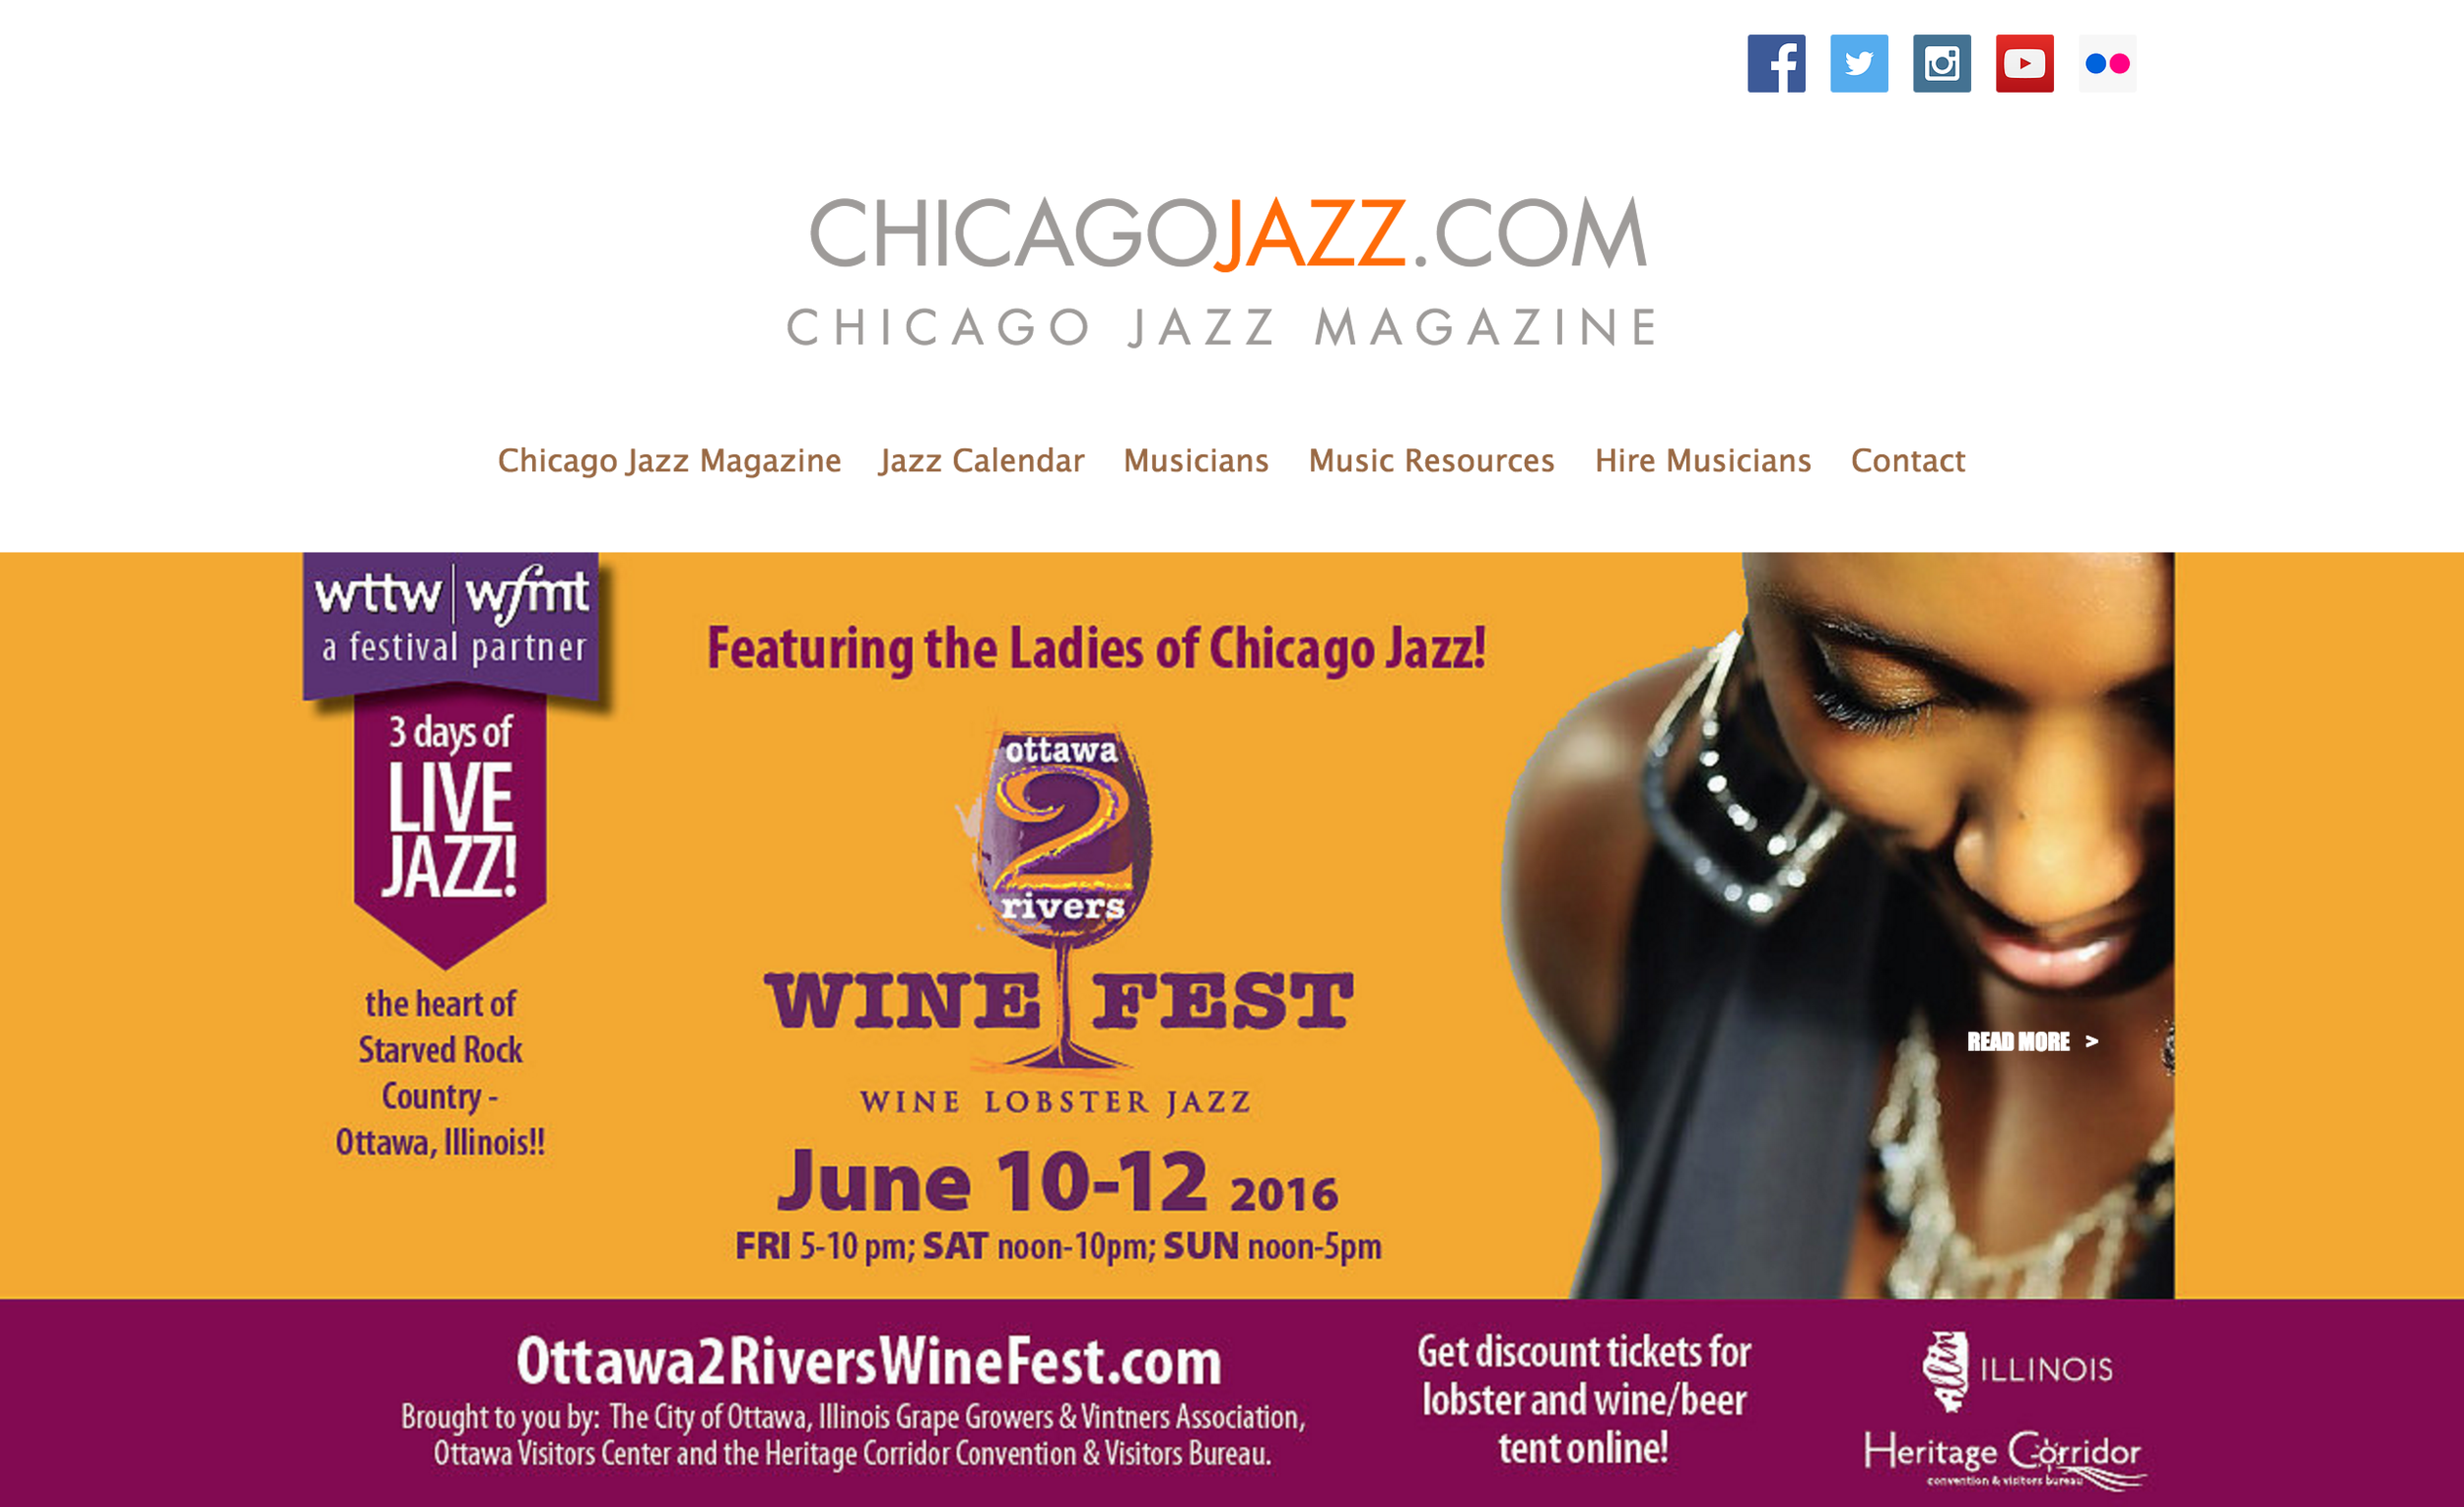 The #1 Resource for Jazz in Chicago  by Mike Jeffers